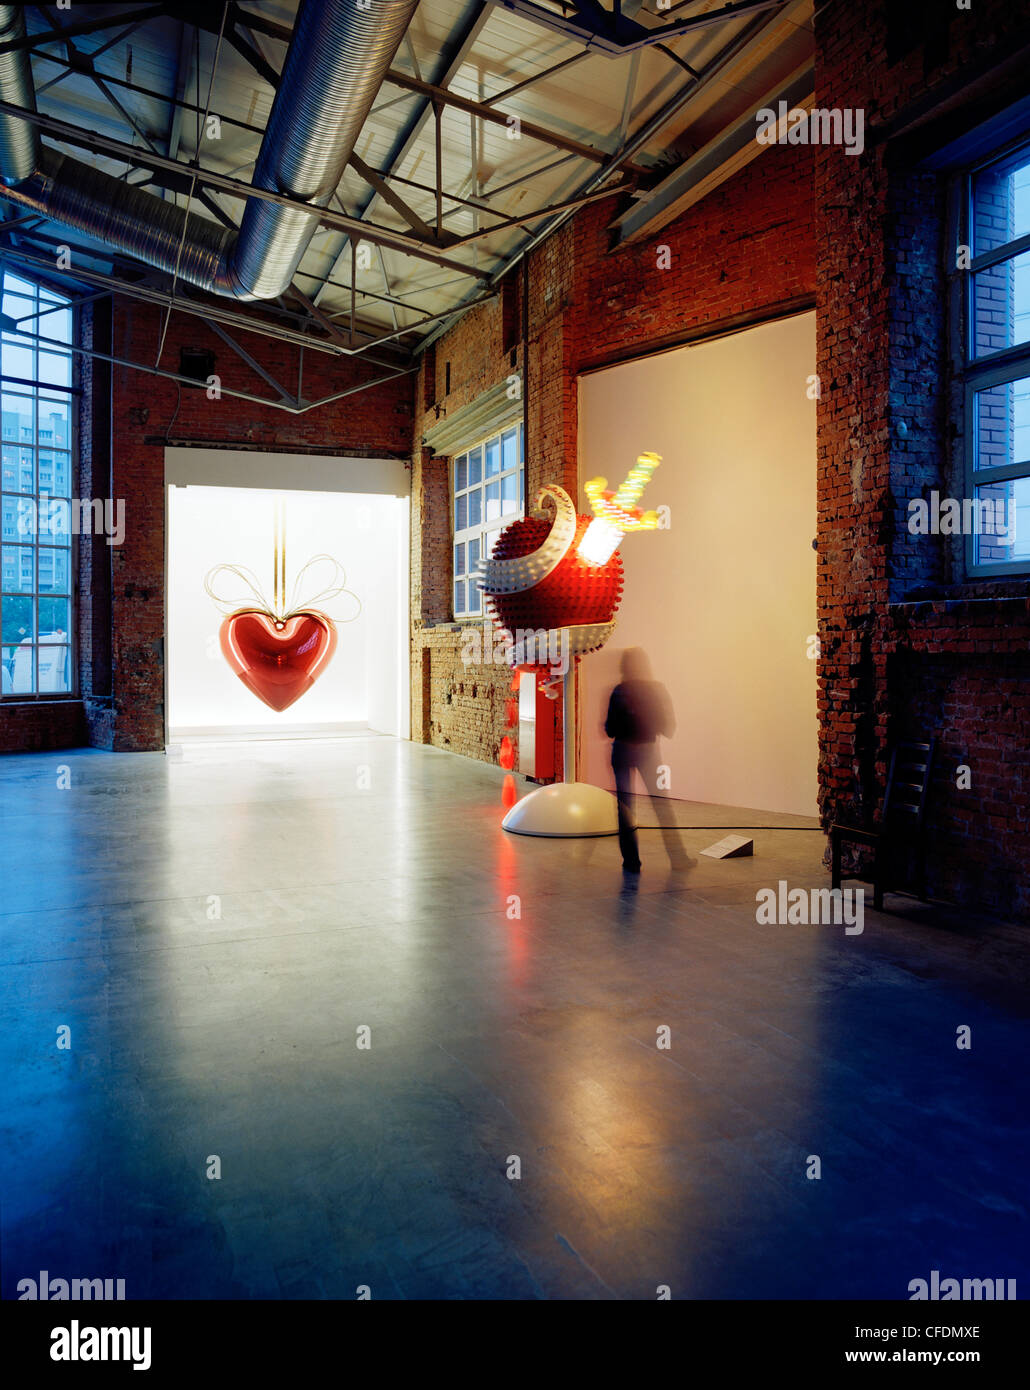 Artwork Hanging Heart by Jeff Koons, exibition at The Garage, Center for Contemporary Cultur, Moscow, Russia, Europe - Stock Image